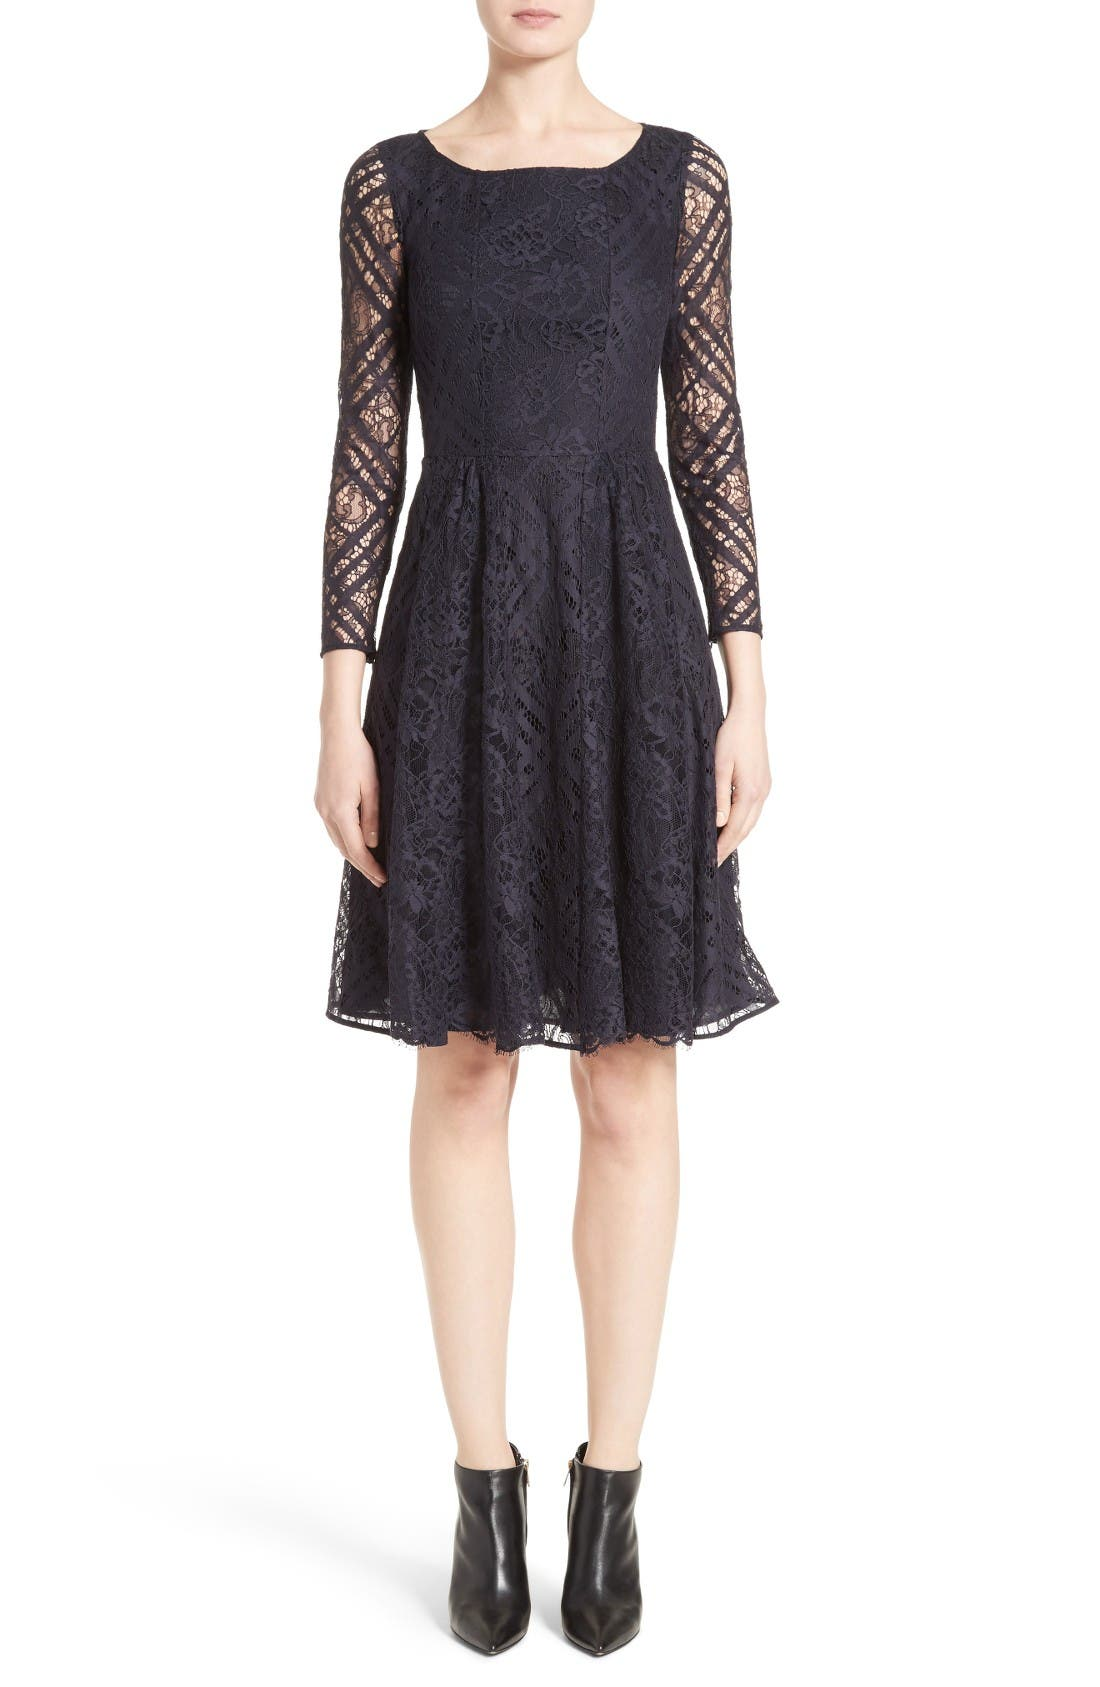 Burberry Liliana Lace Fit & Flare Dress